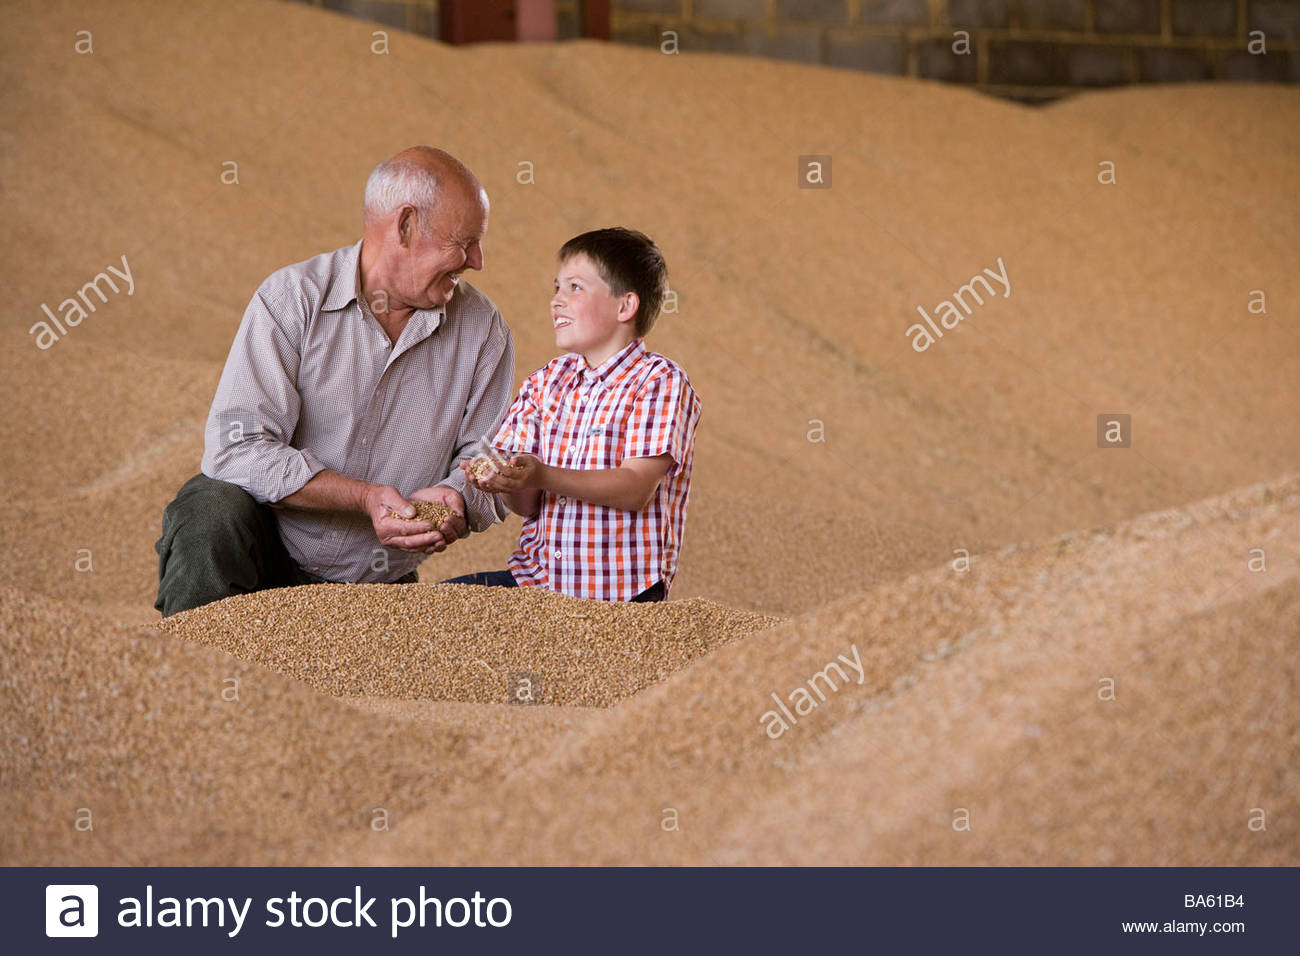 Farmer and grandson cupping wheat grains on grain heap - Stock Image